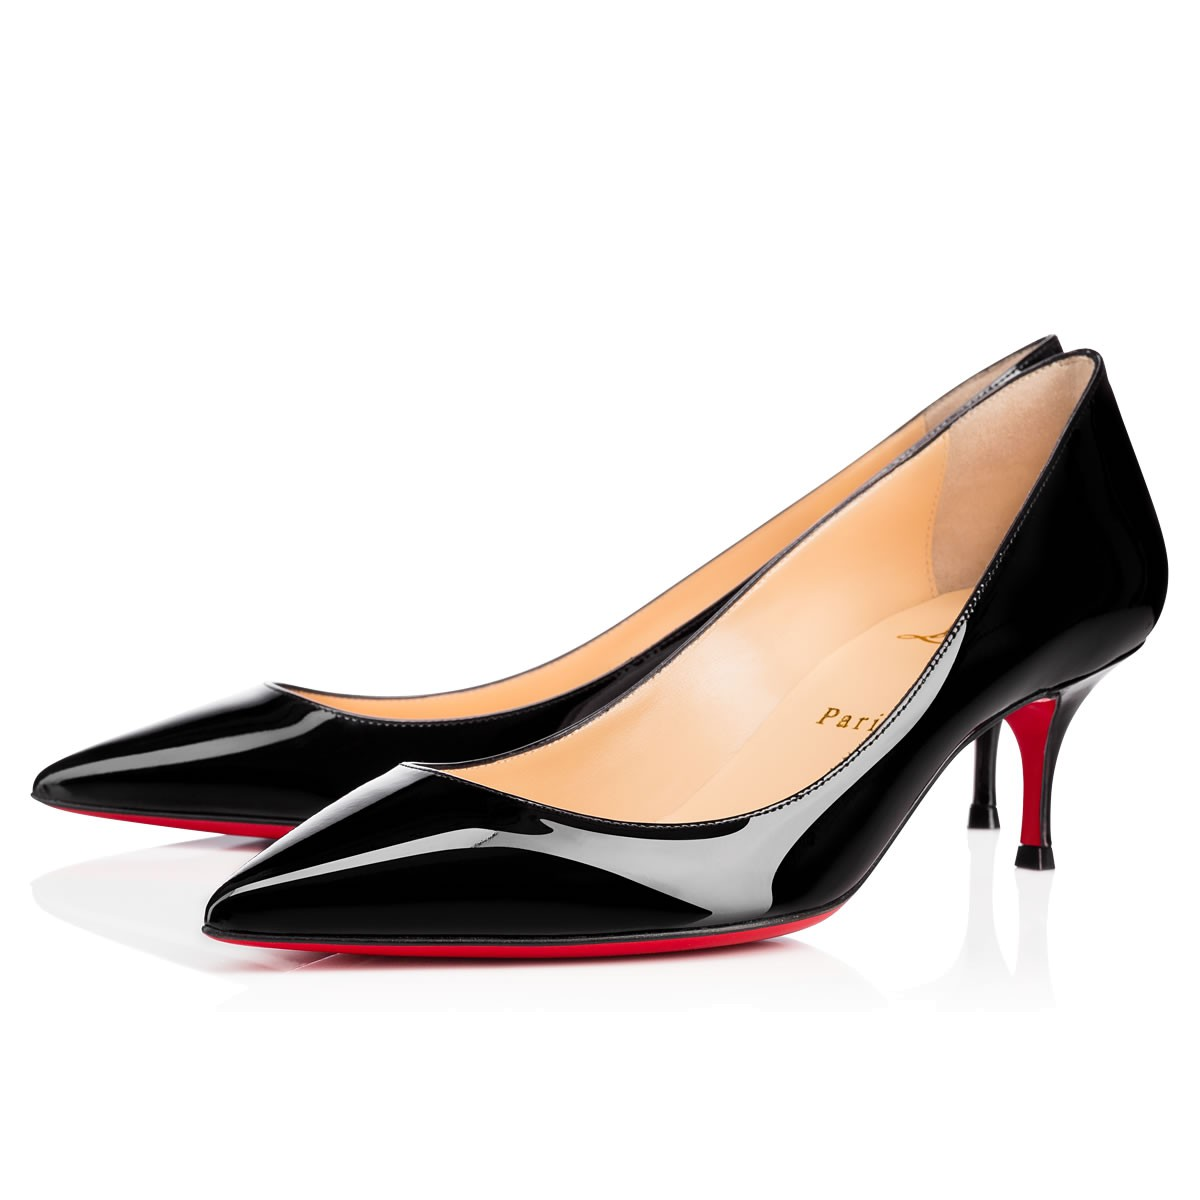 Pigalle Follies 55 Patent-Leather Pumps, Black